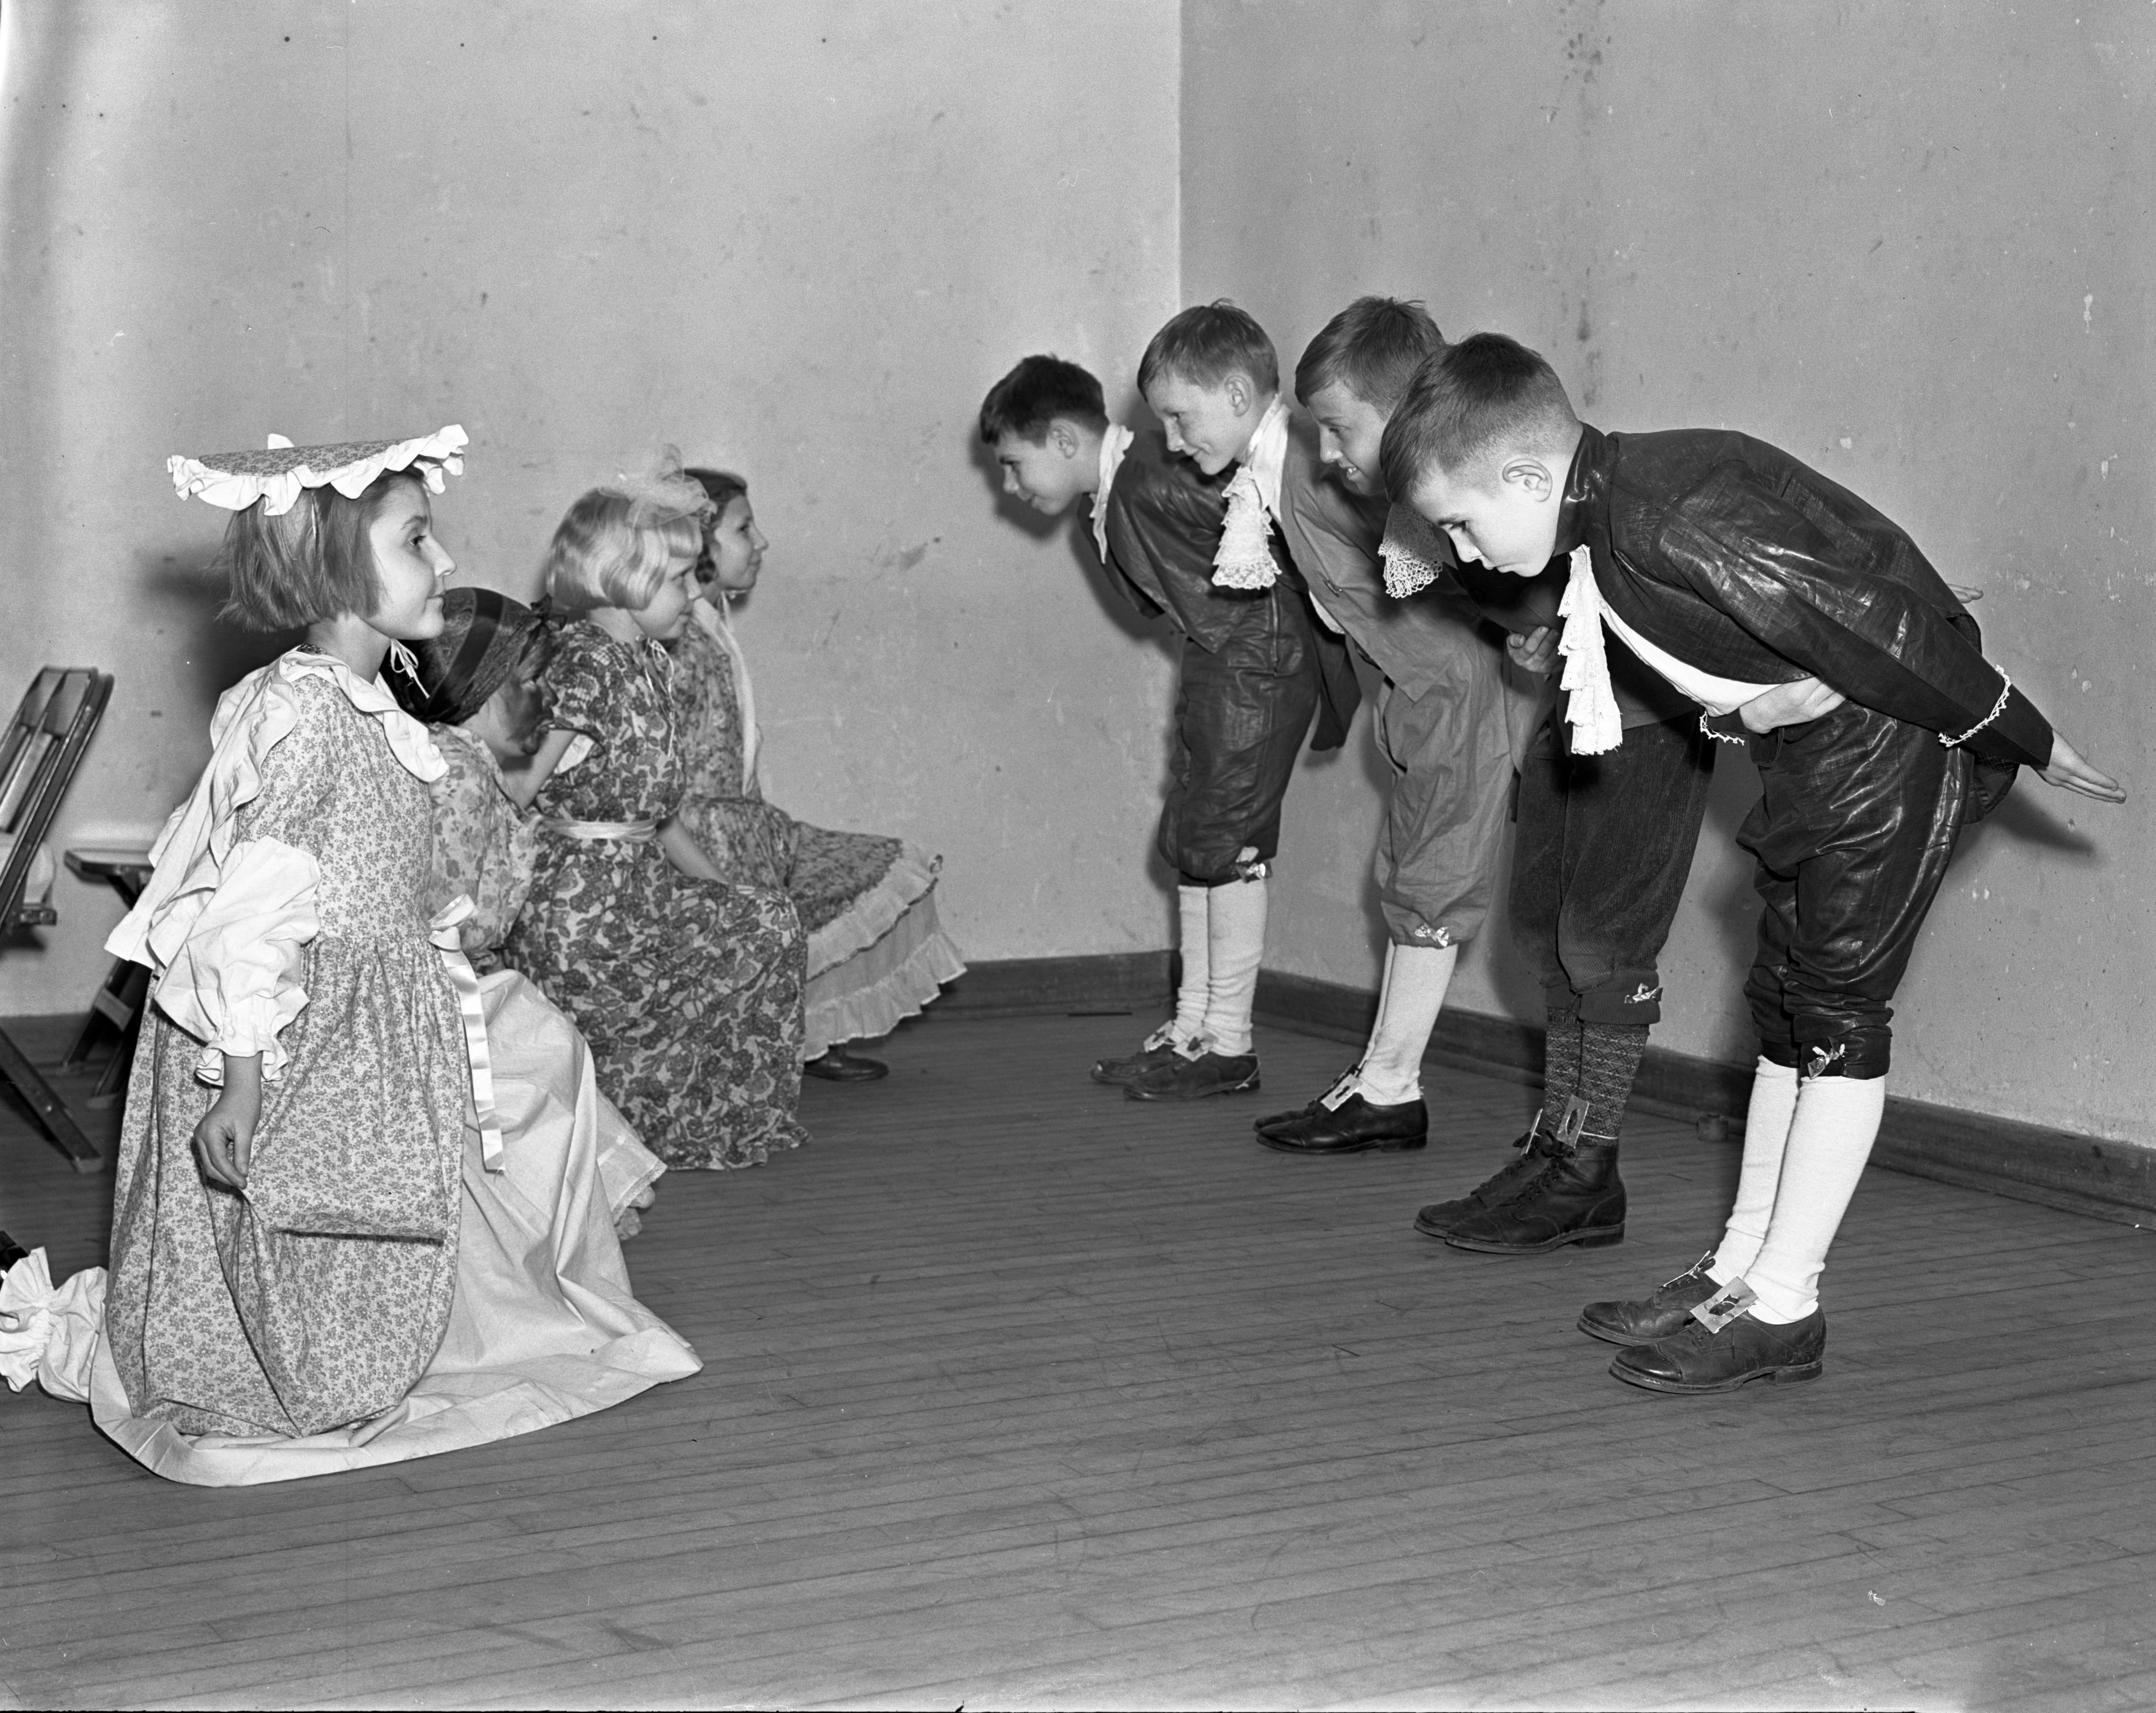 Bach Elementary perform a play about Washington, February 23, 1938 image